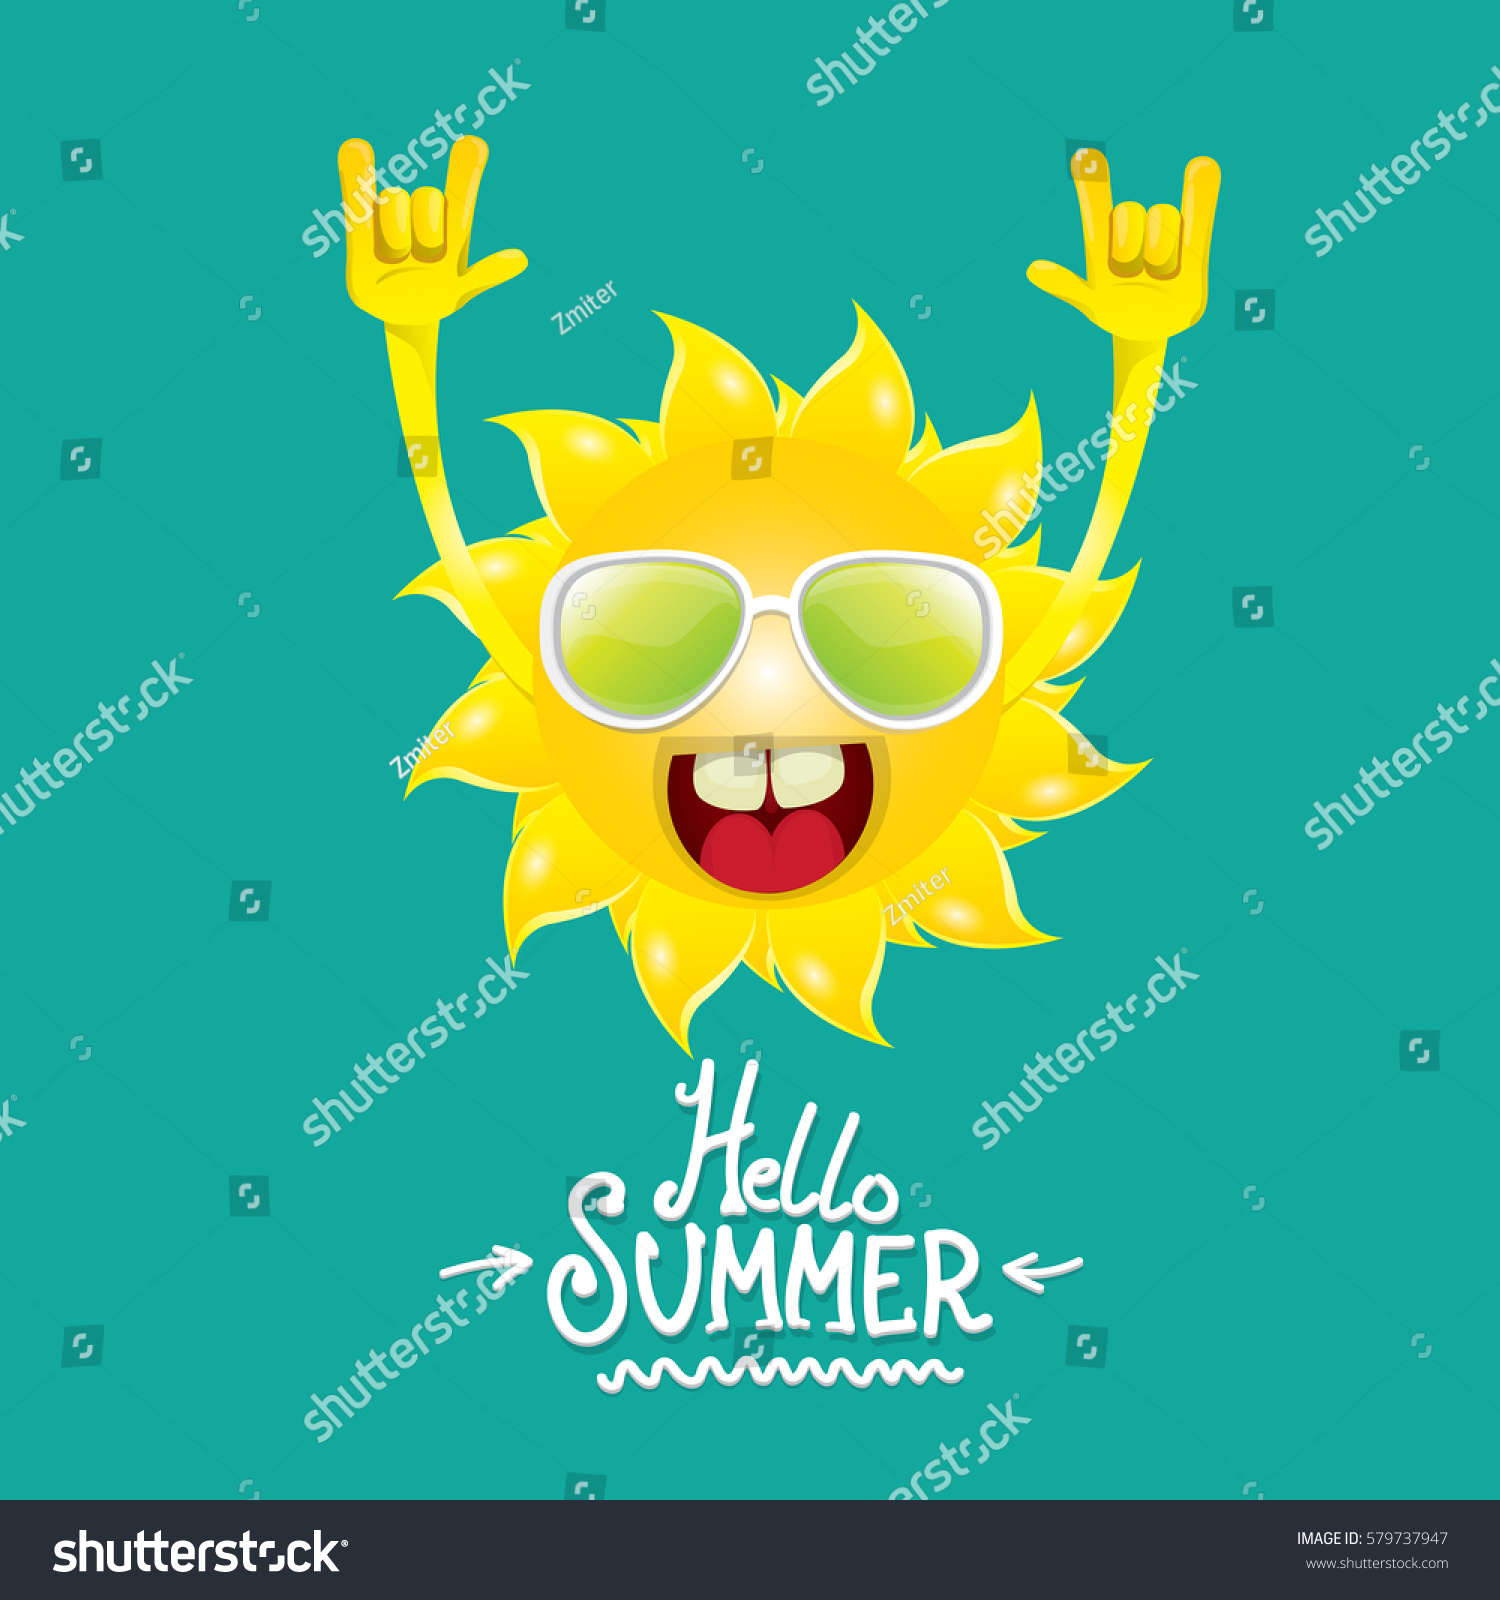 Rock n roll poster design - Hello Summer Rock N Roll Vector Poster Summer Party Background With Funky Sun Character Design